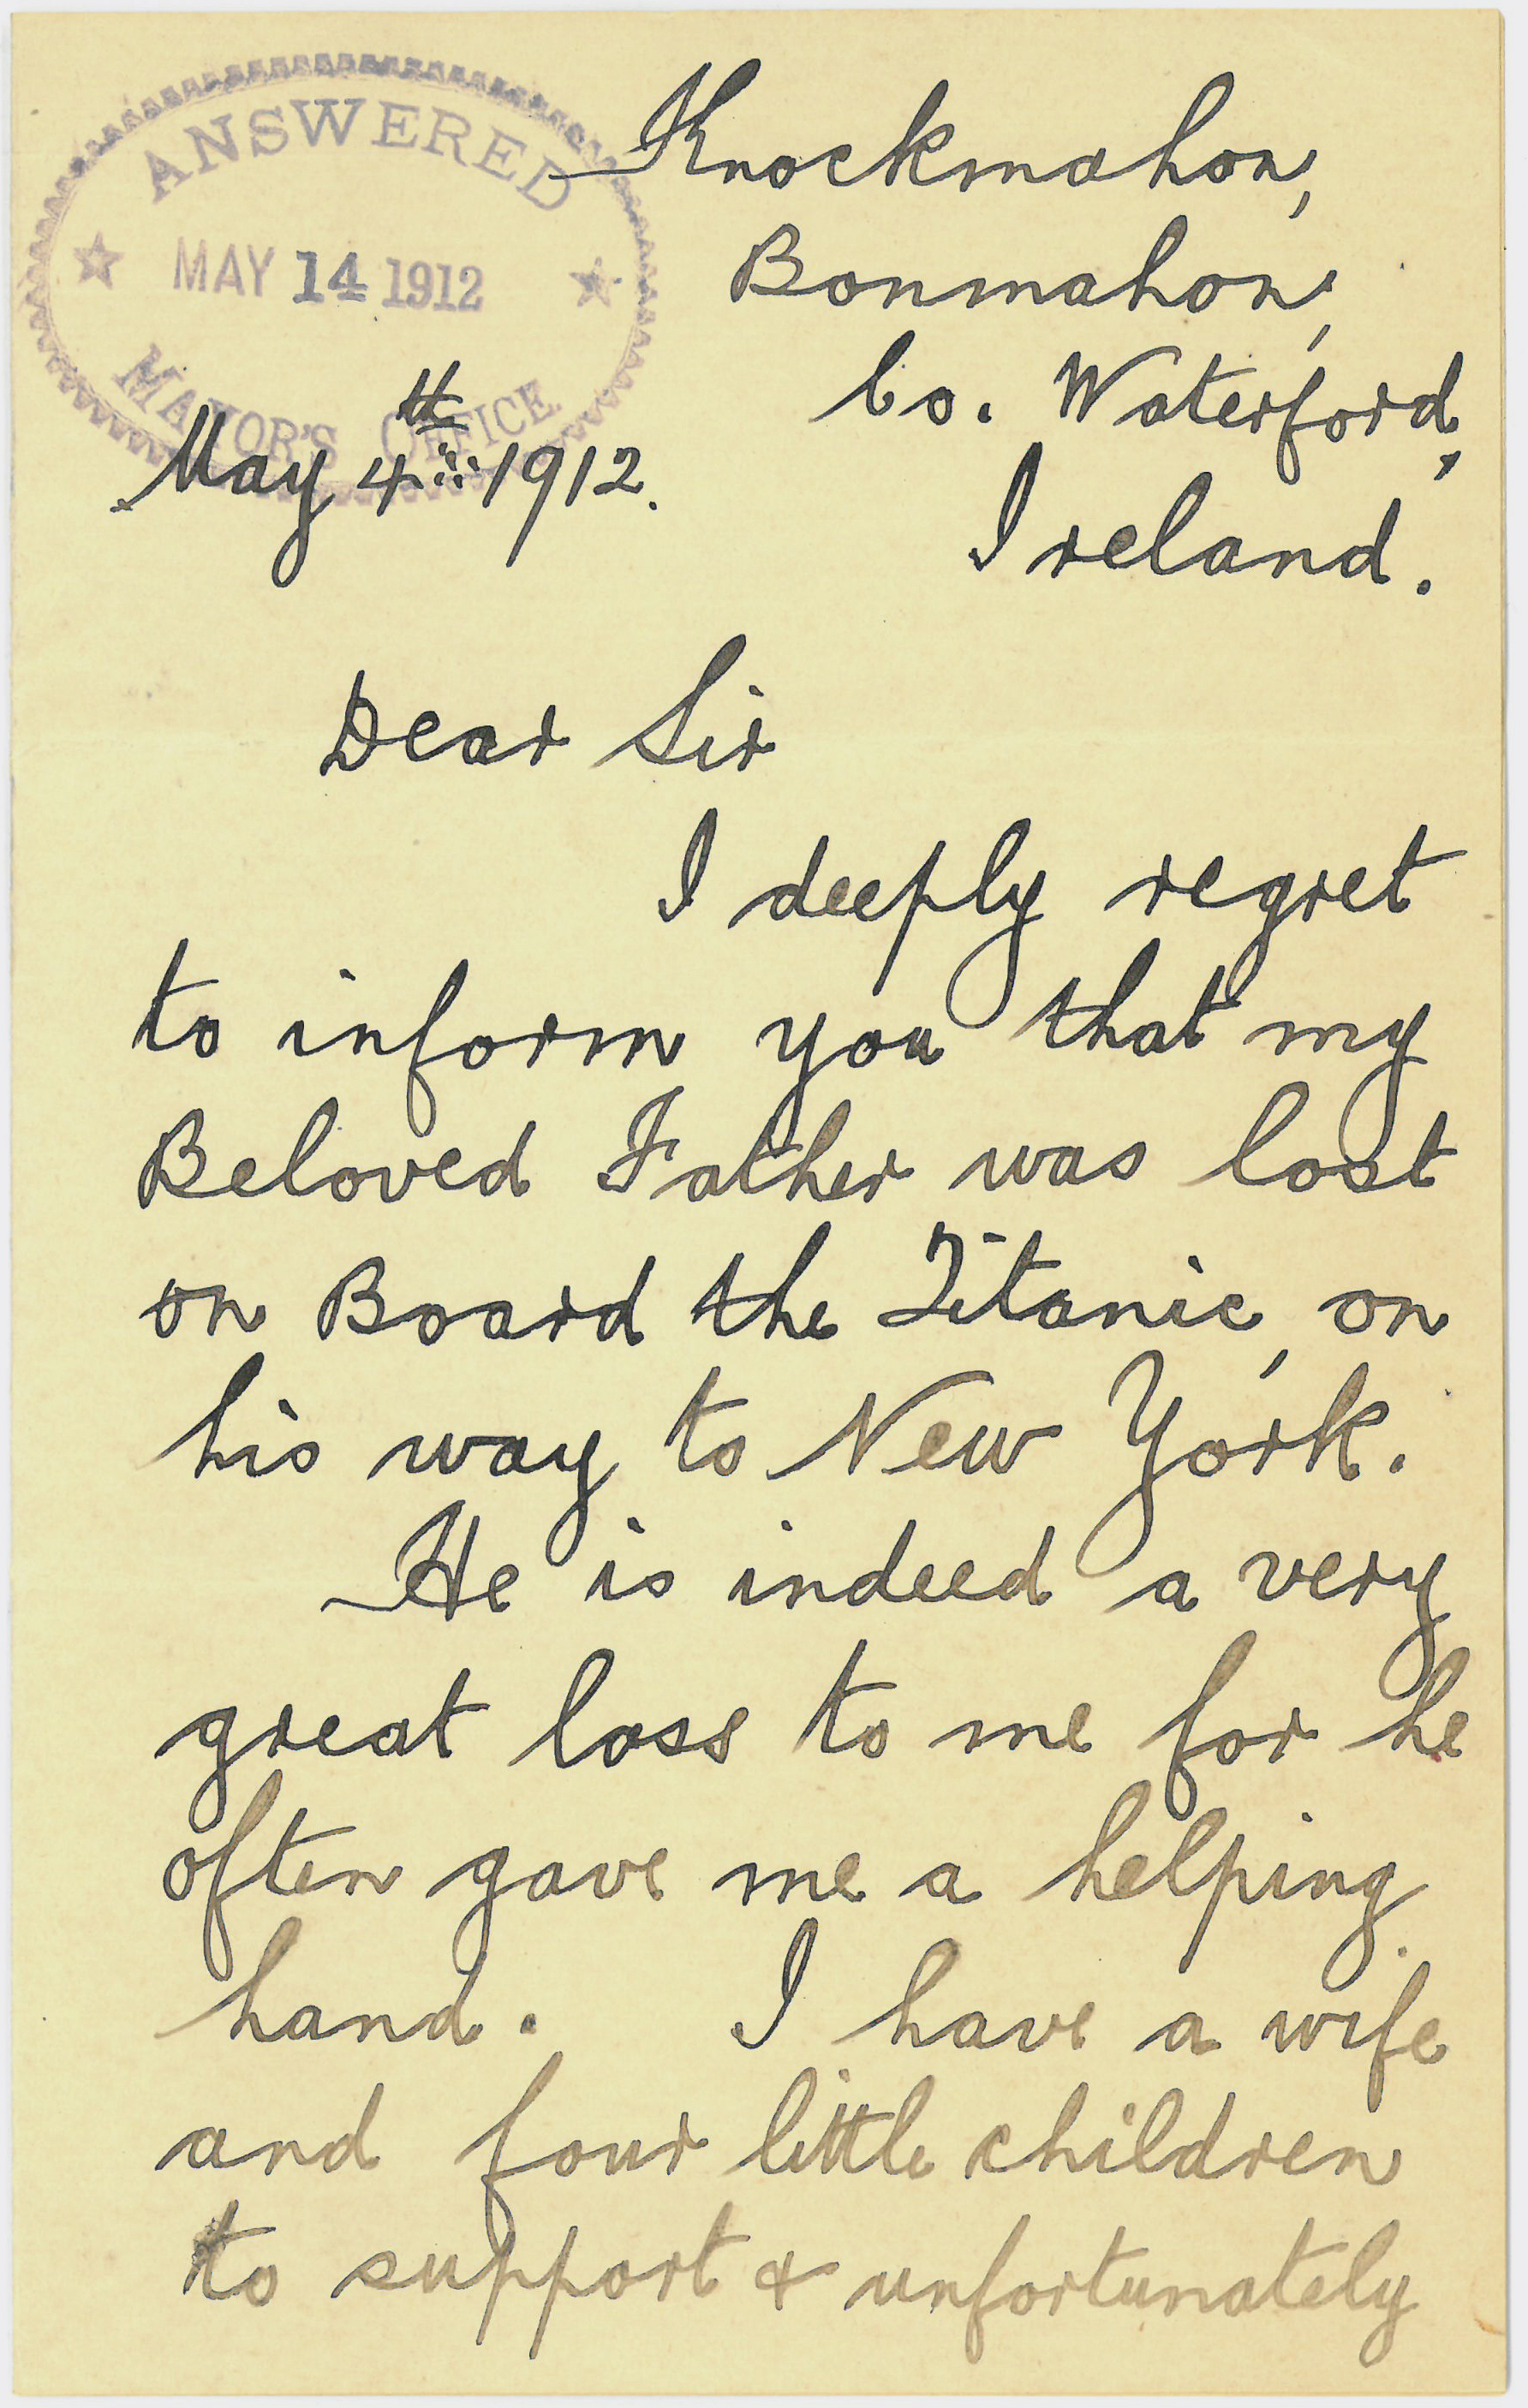 Letter asking for support from the Titanic relief fund, May 4, 1912. Mayor William J. Gaynor Subject Files-Titanic Disaster Relief fund-Aid Requests, roll 10, NYC Municipal Archives.